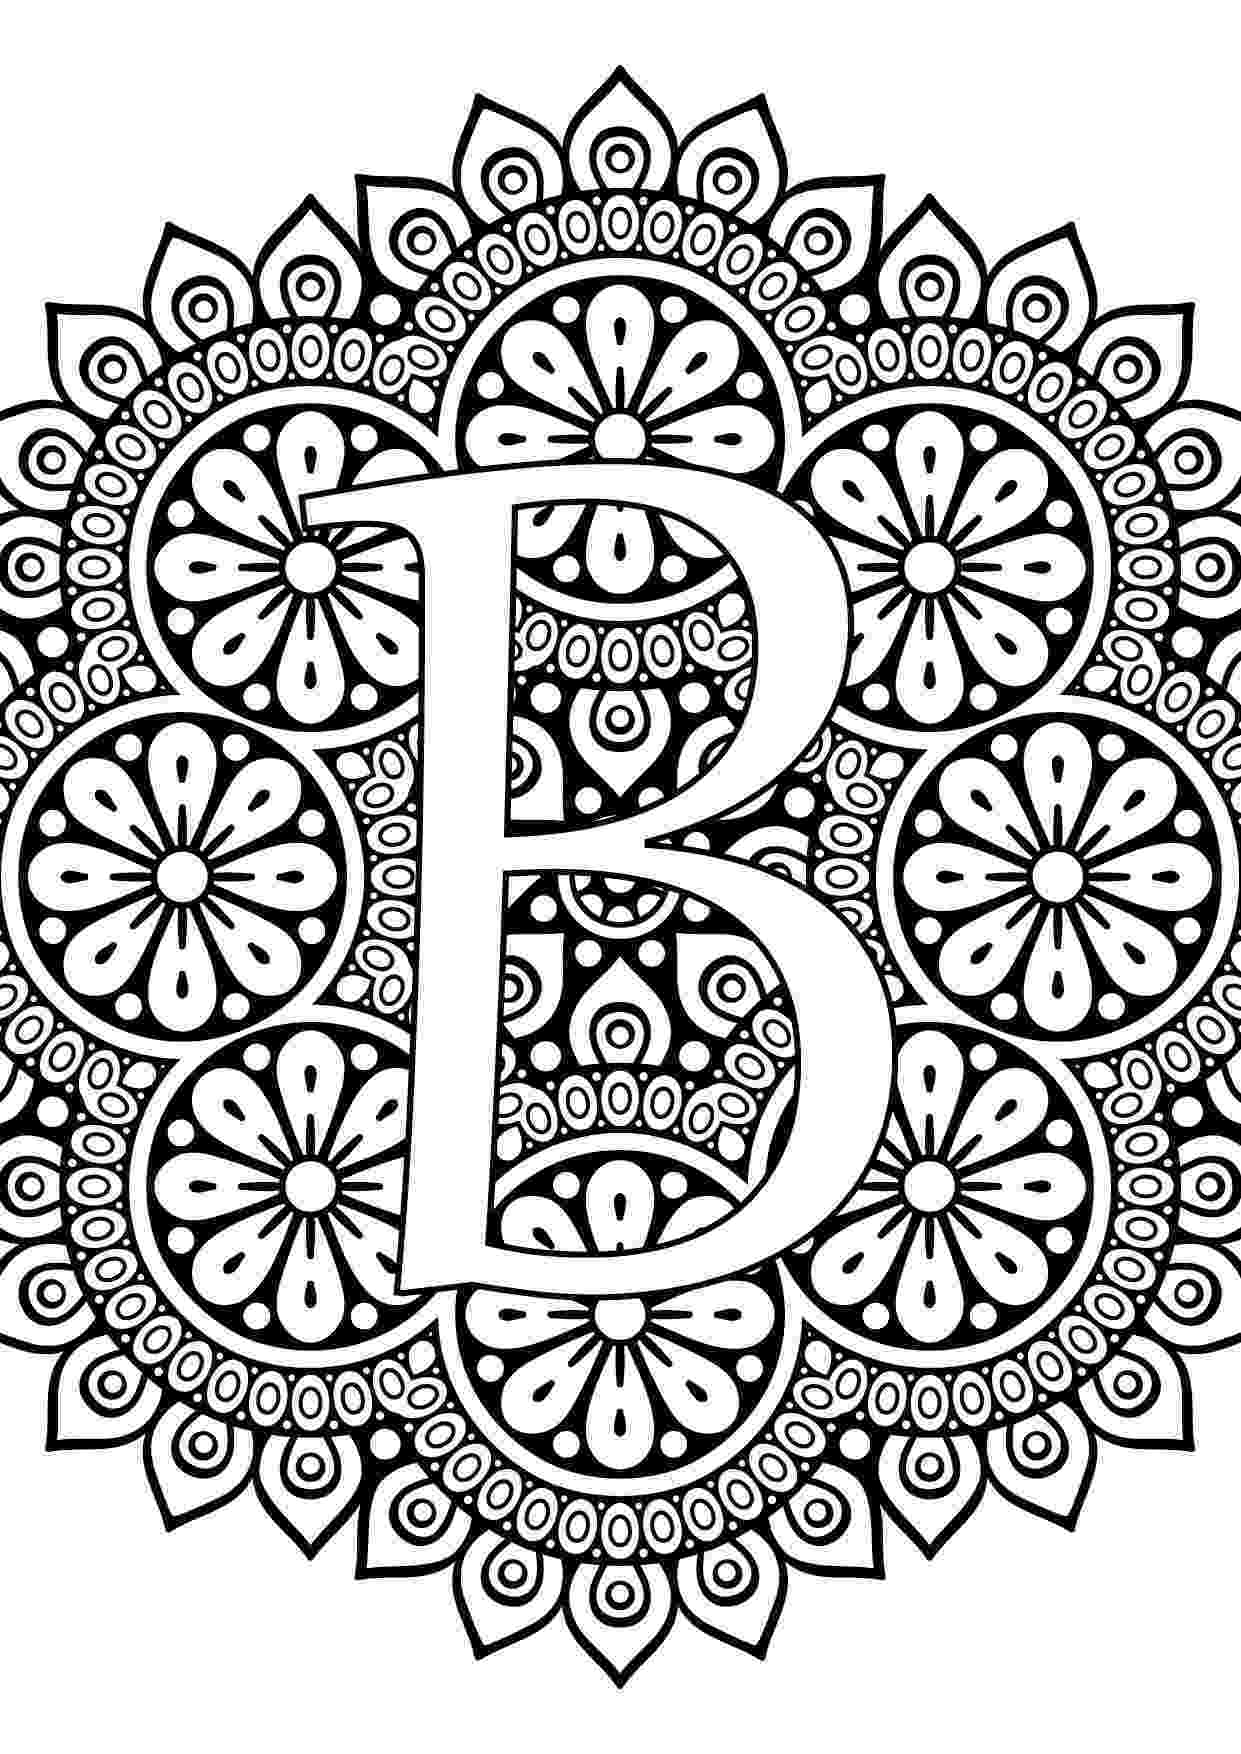 fun designs to color design coloring pages free download on clipartmag to designs color fun